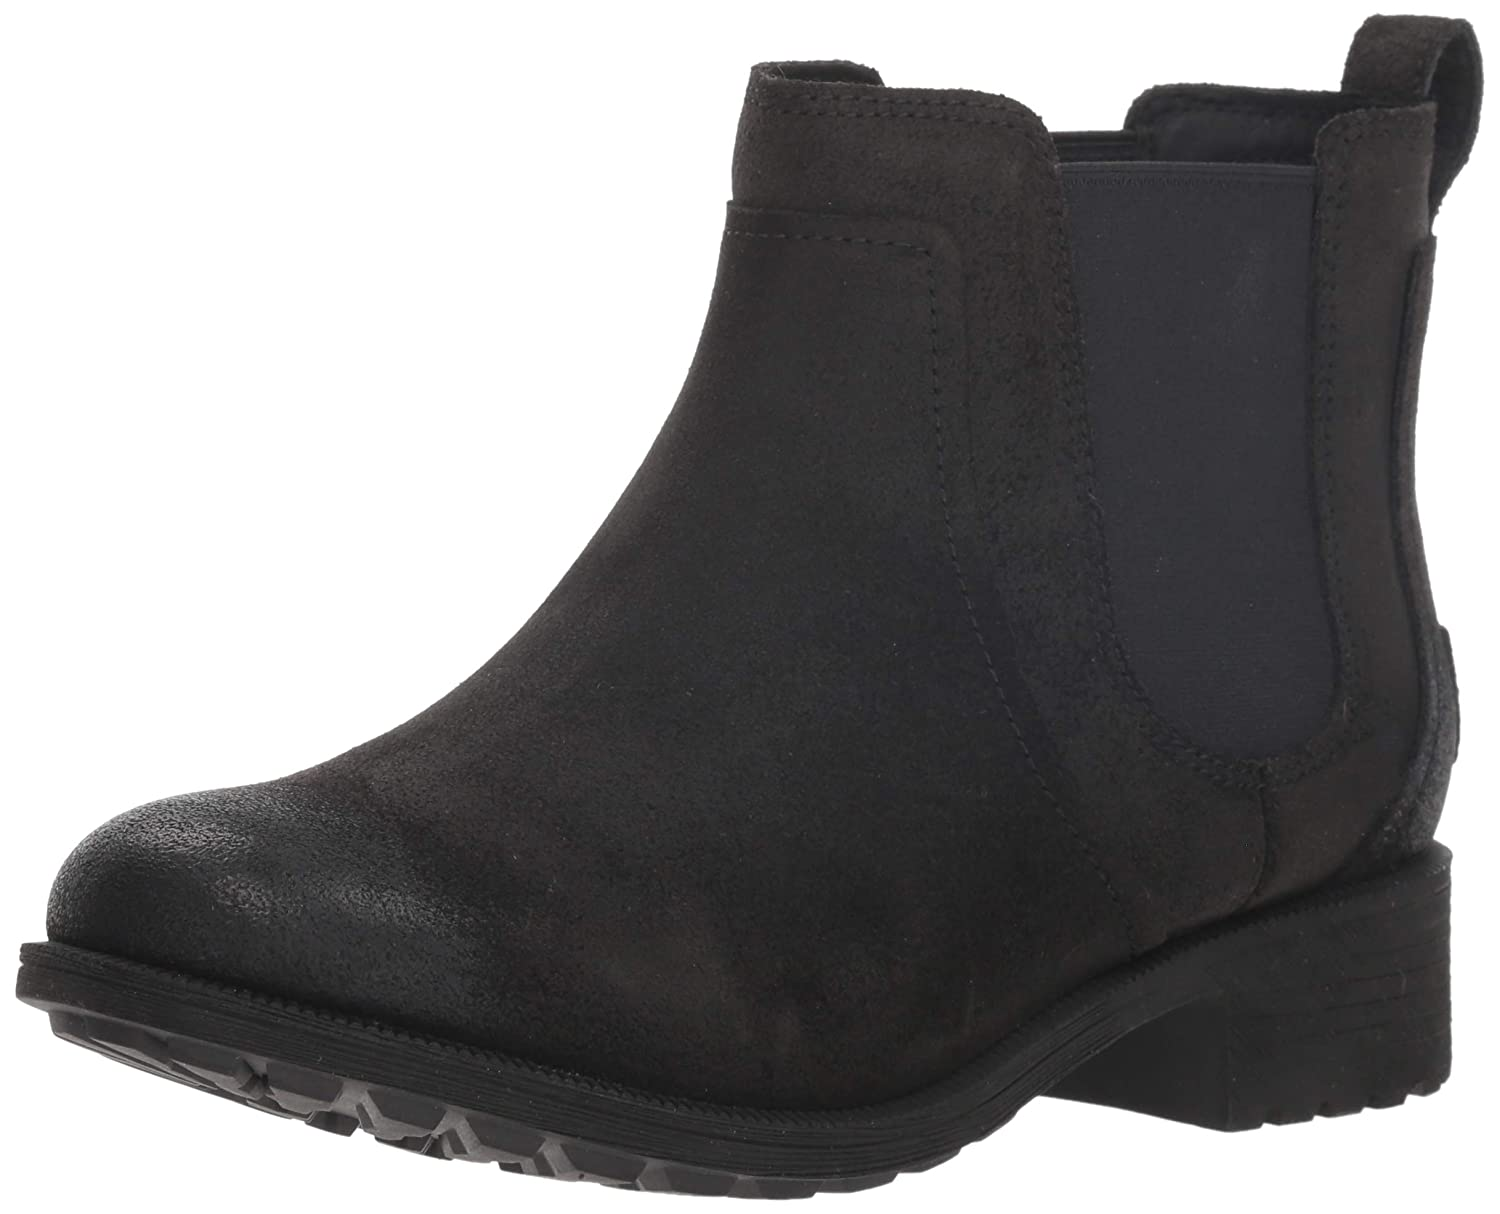 9957a31d4b3 UGG - Bonham Boot II - Black Waterproof Leather Boots